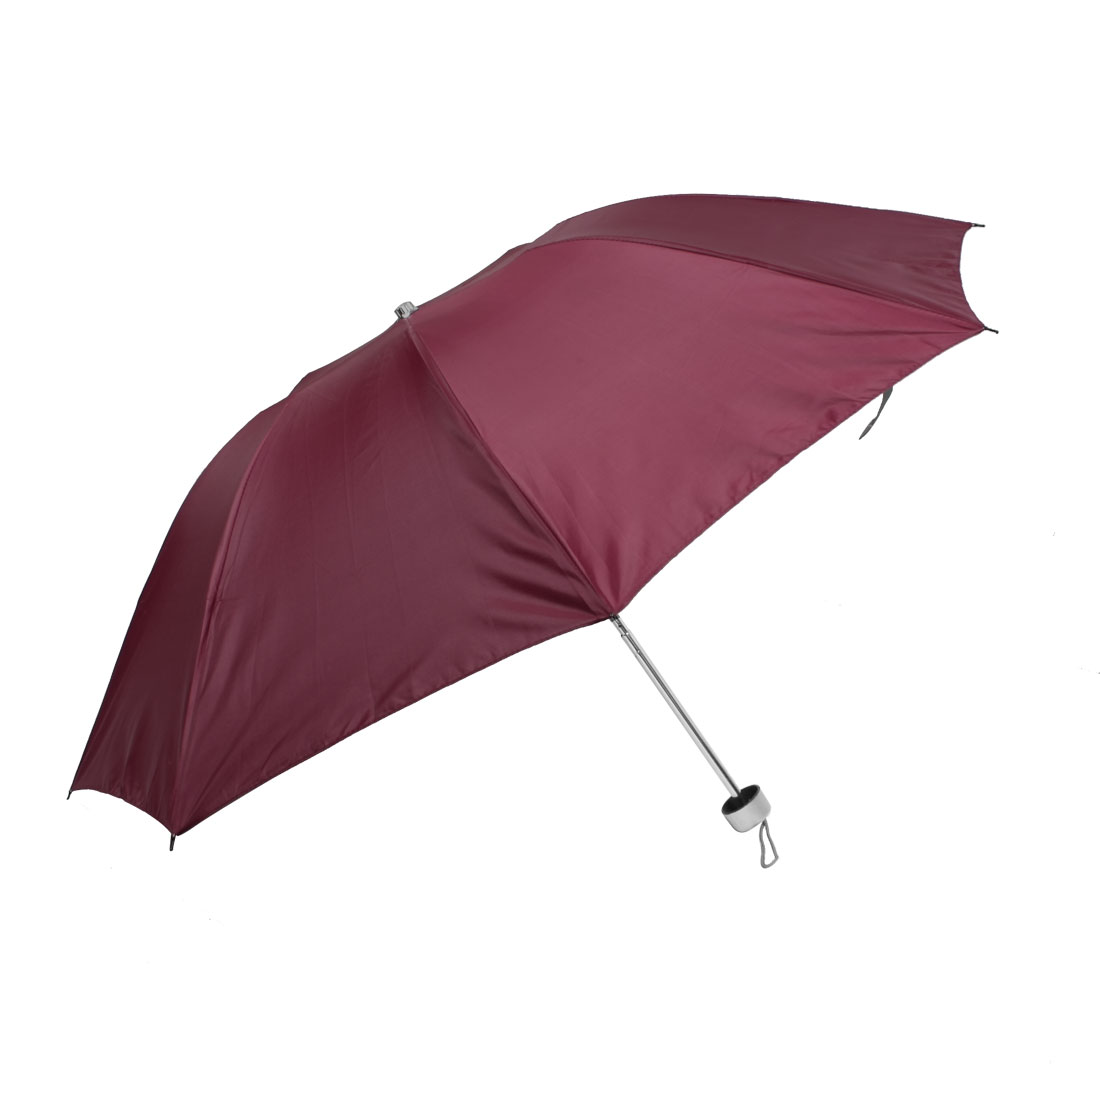 Plastic Handle Water Resistant Fabric Folding Shaft Red Rain Umbrella